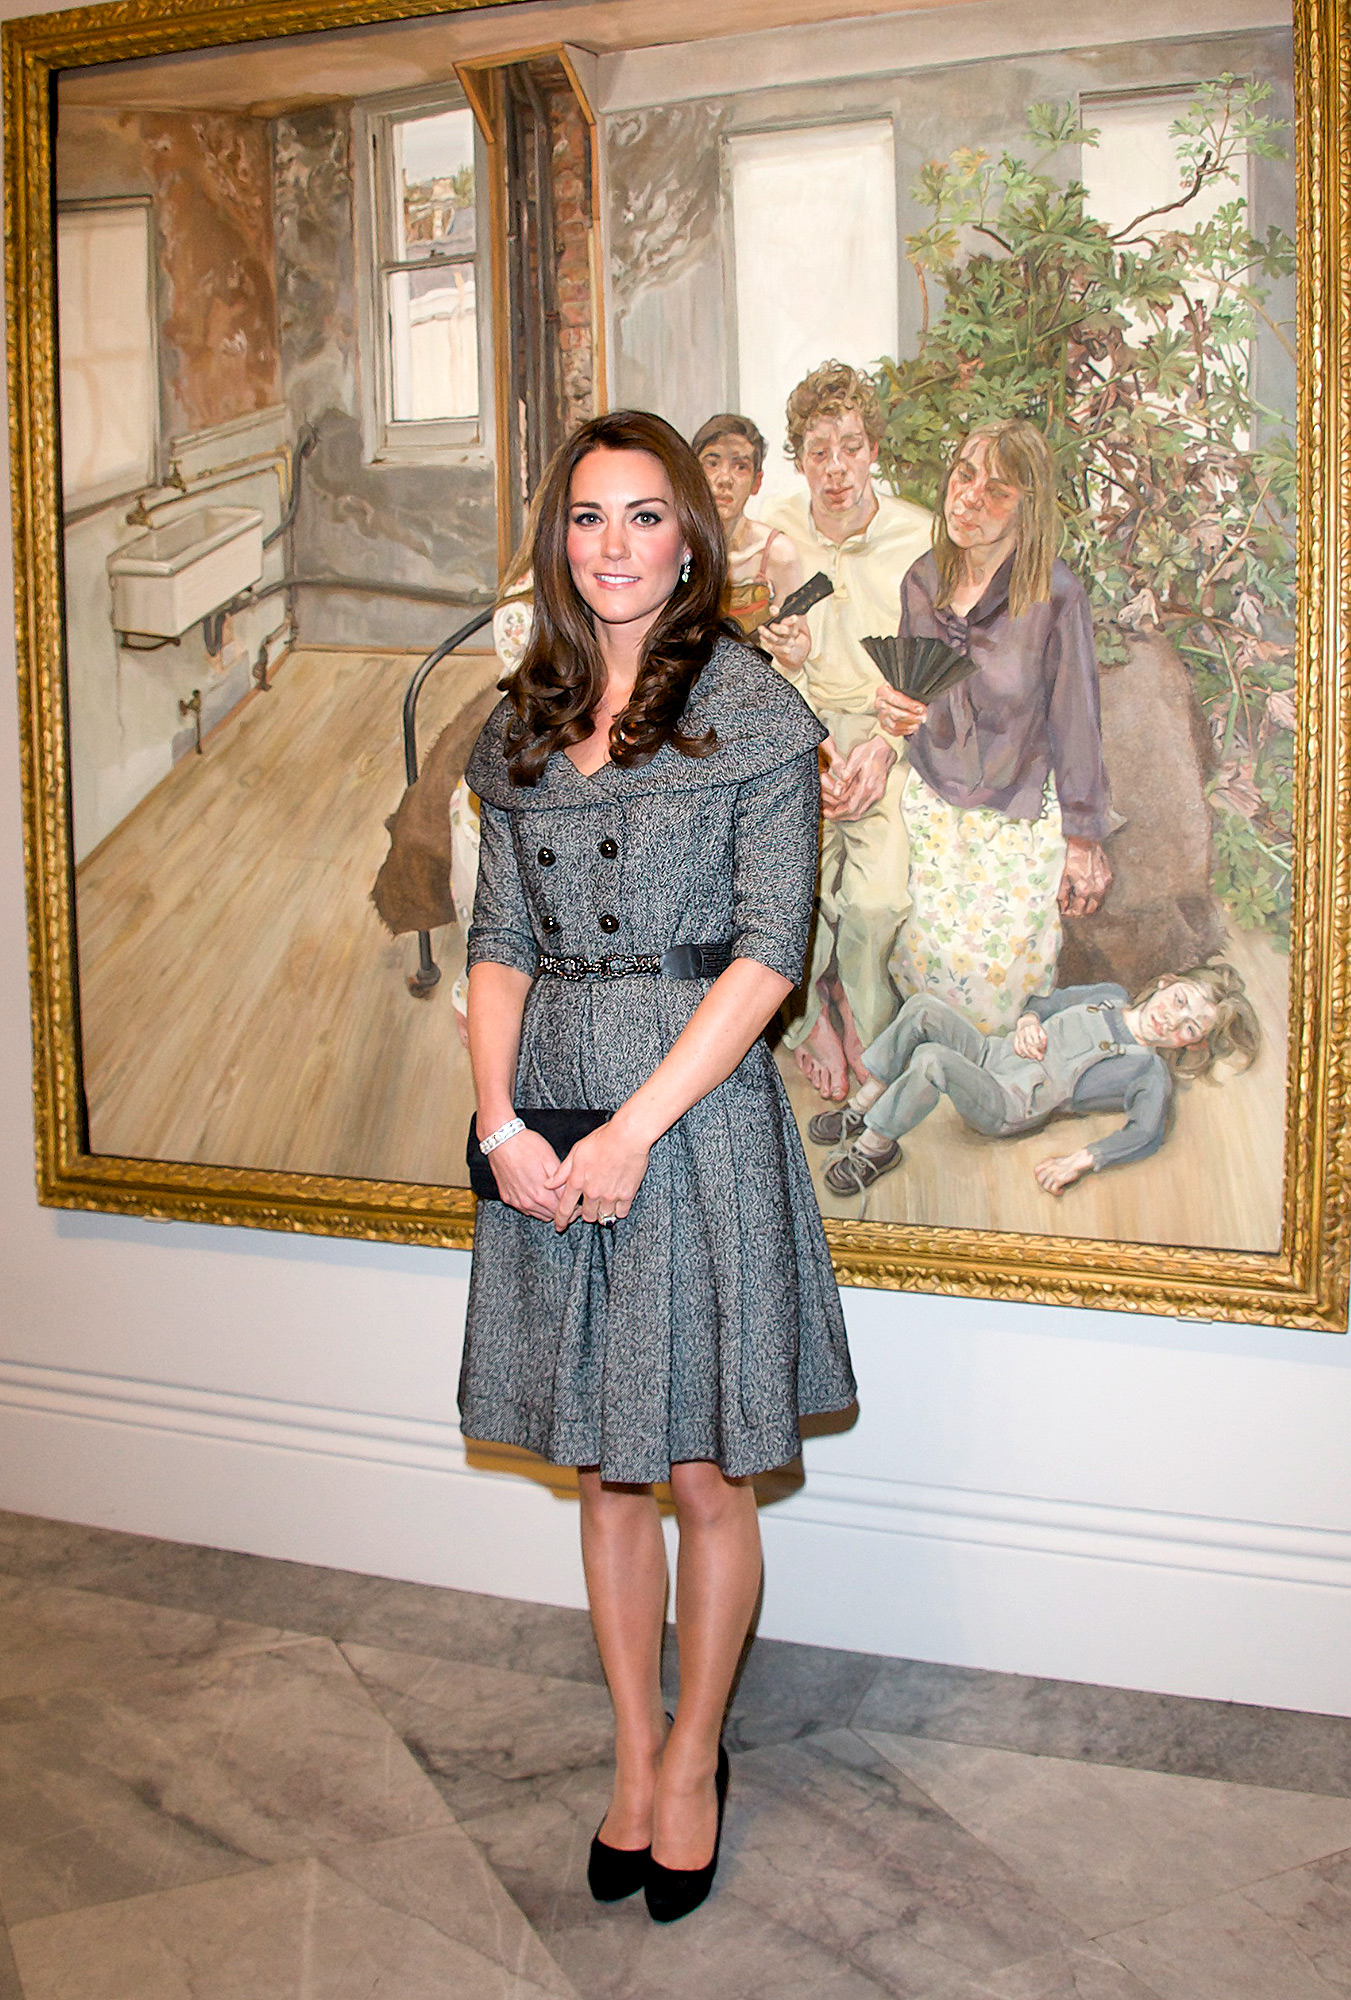 The Duchess of Cambridge Visits Lucian Freud Portraits Exhibition